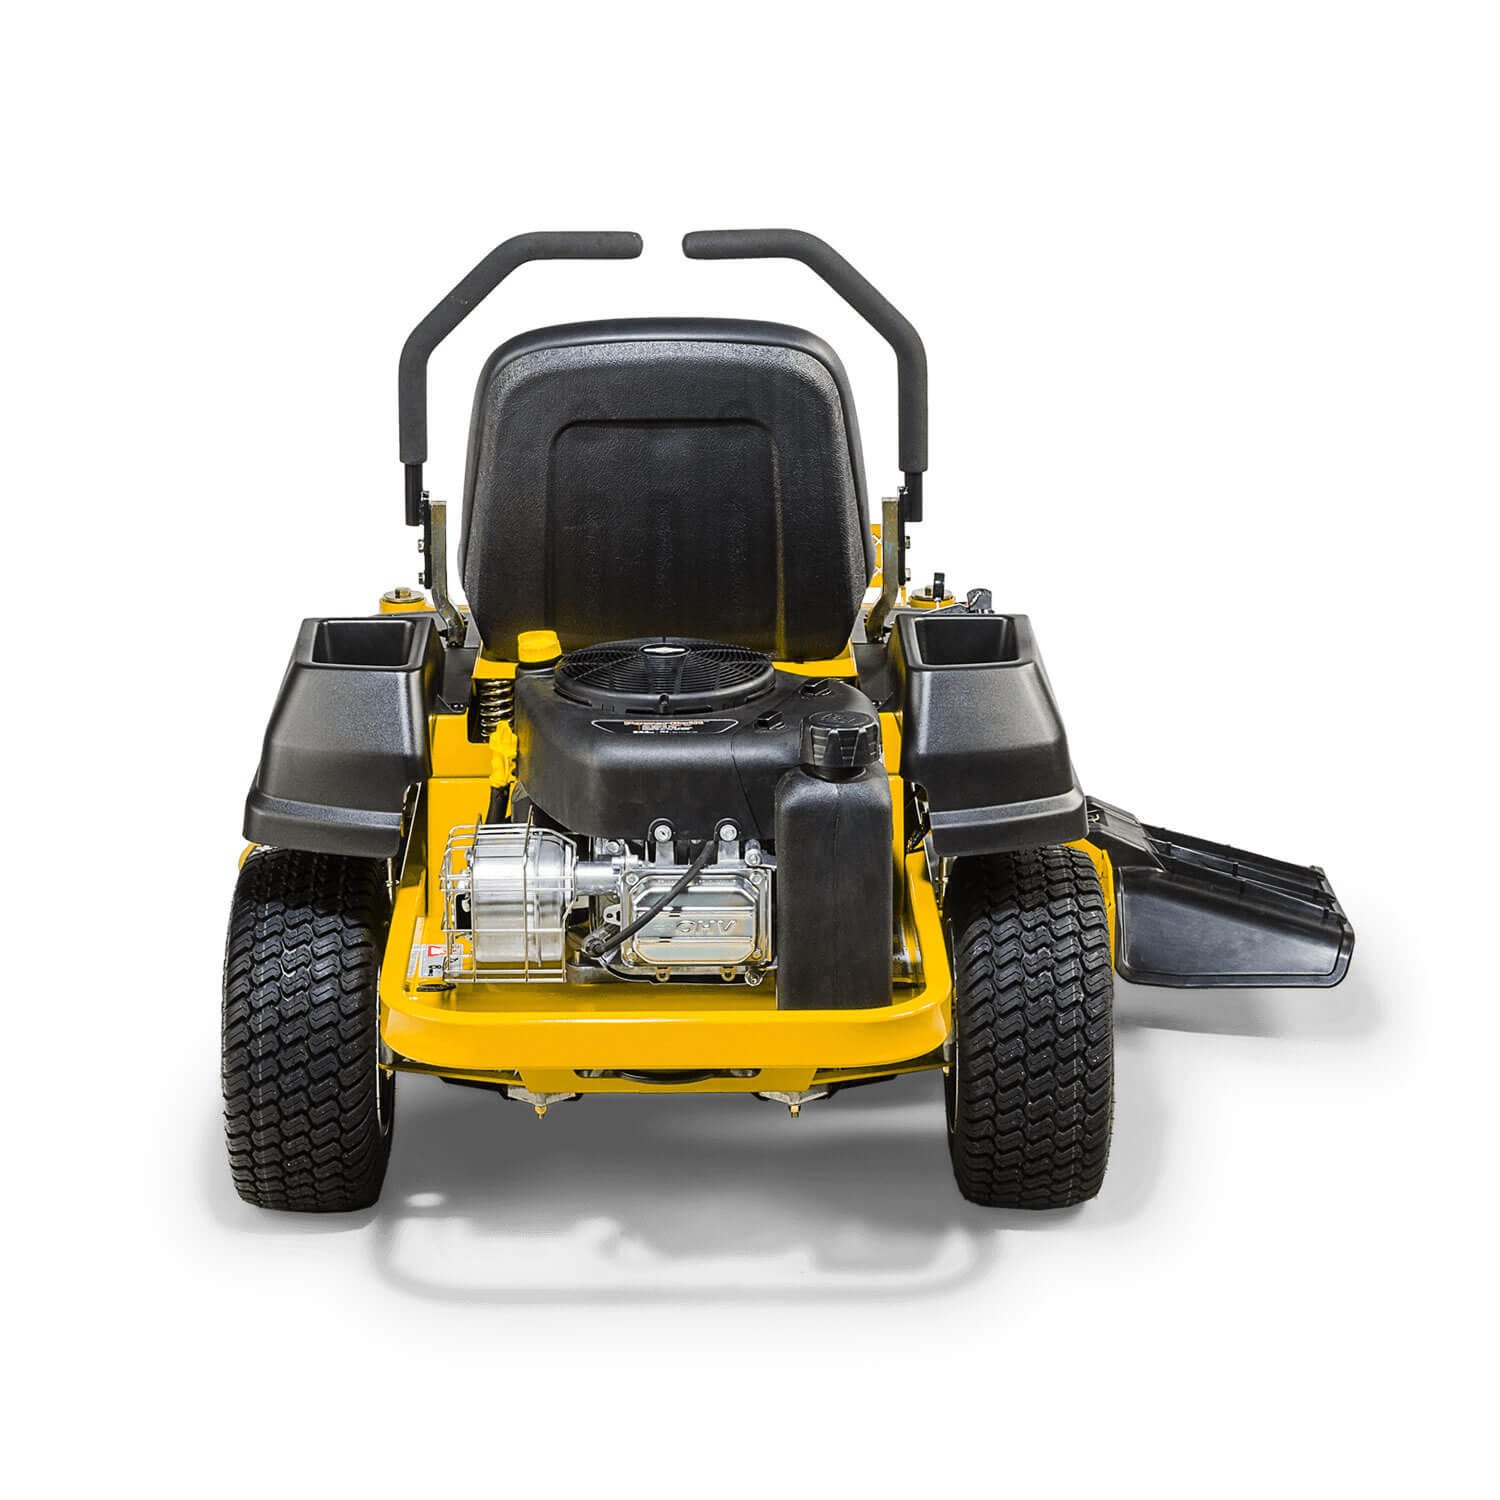 Image of the rear of a yellow mower showing the engine